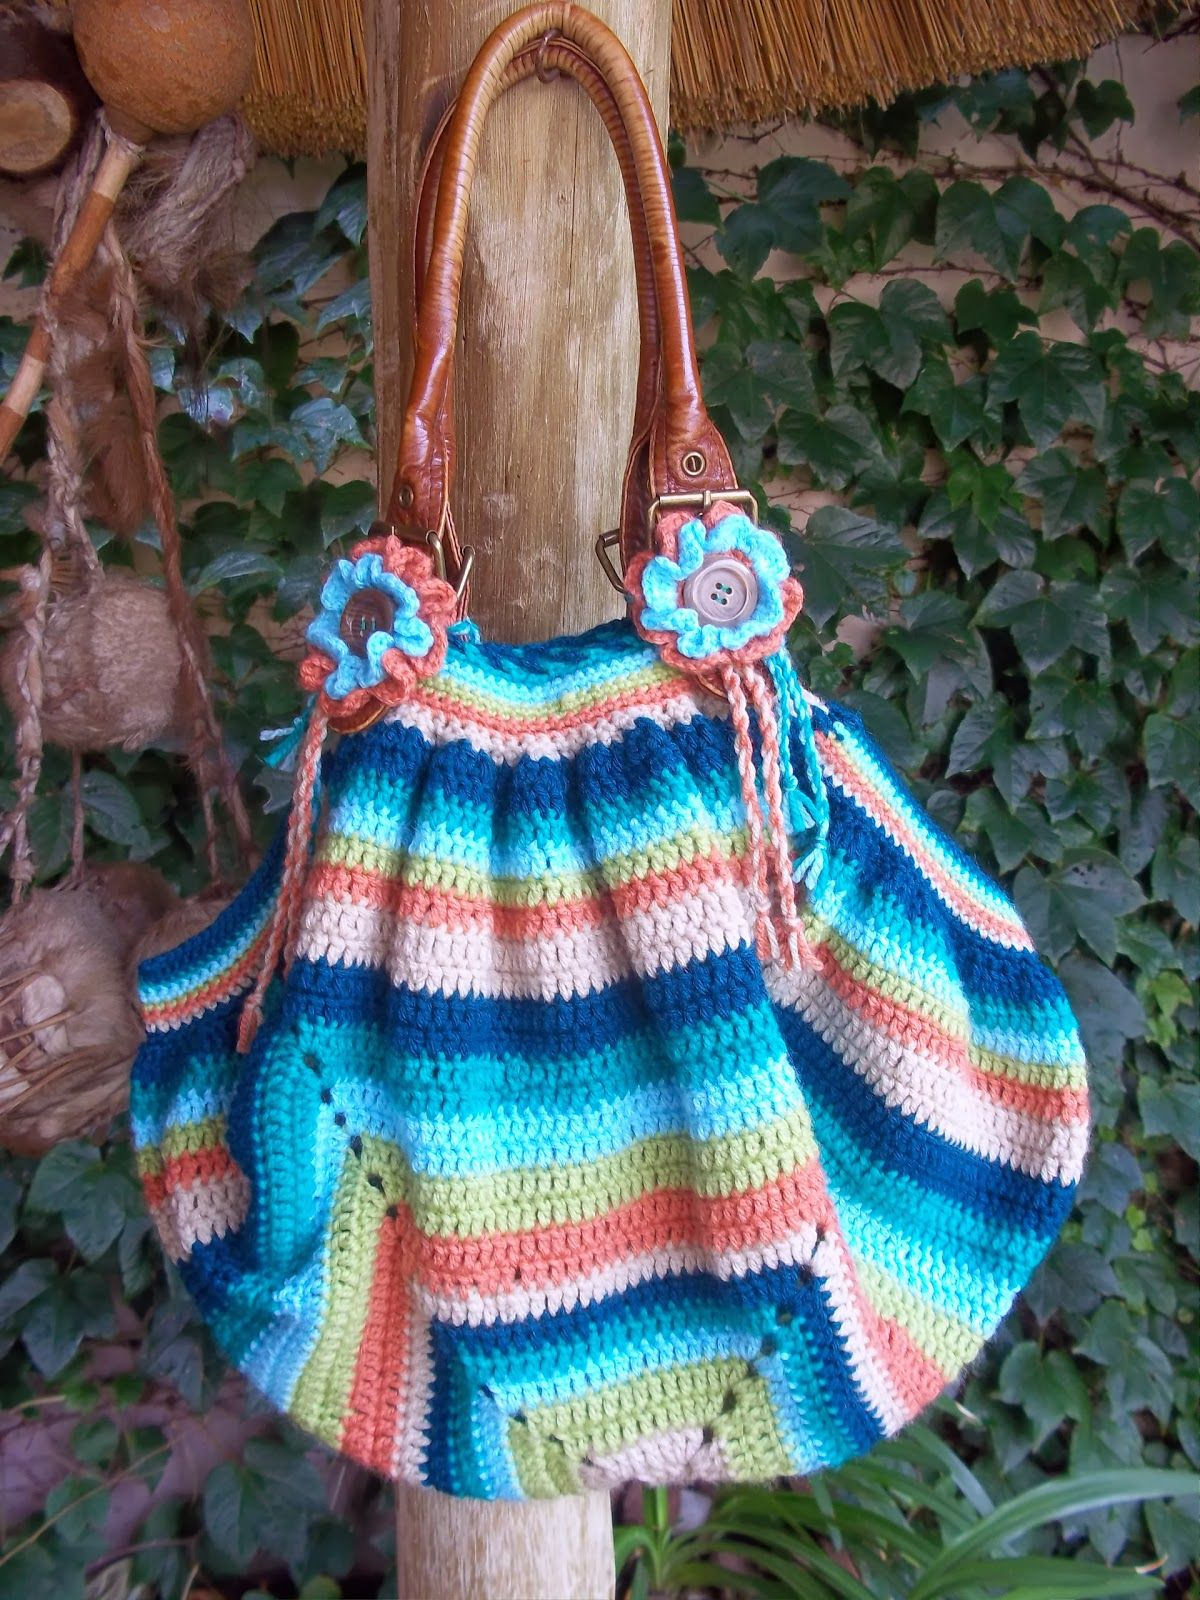 giant granny square bag ~ free pattern ᛡ | Crochet bolsos - Bags ...